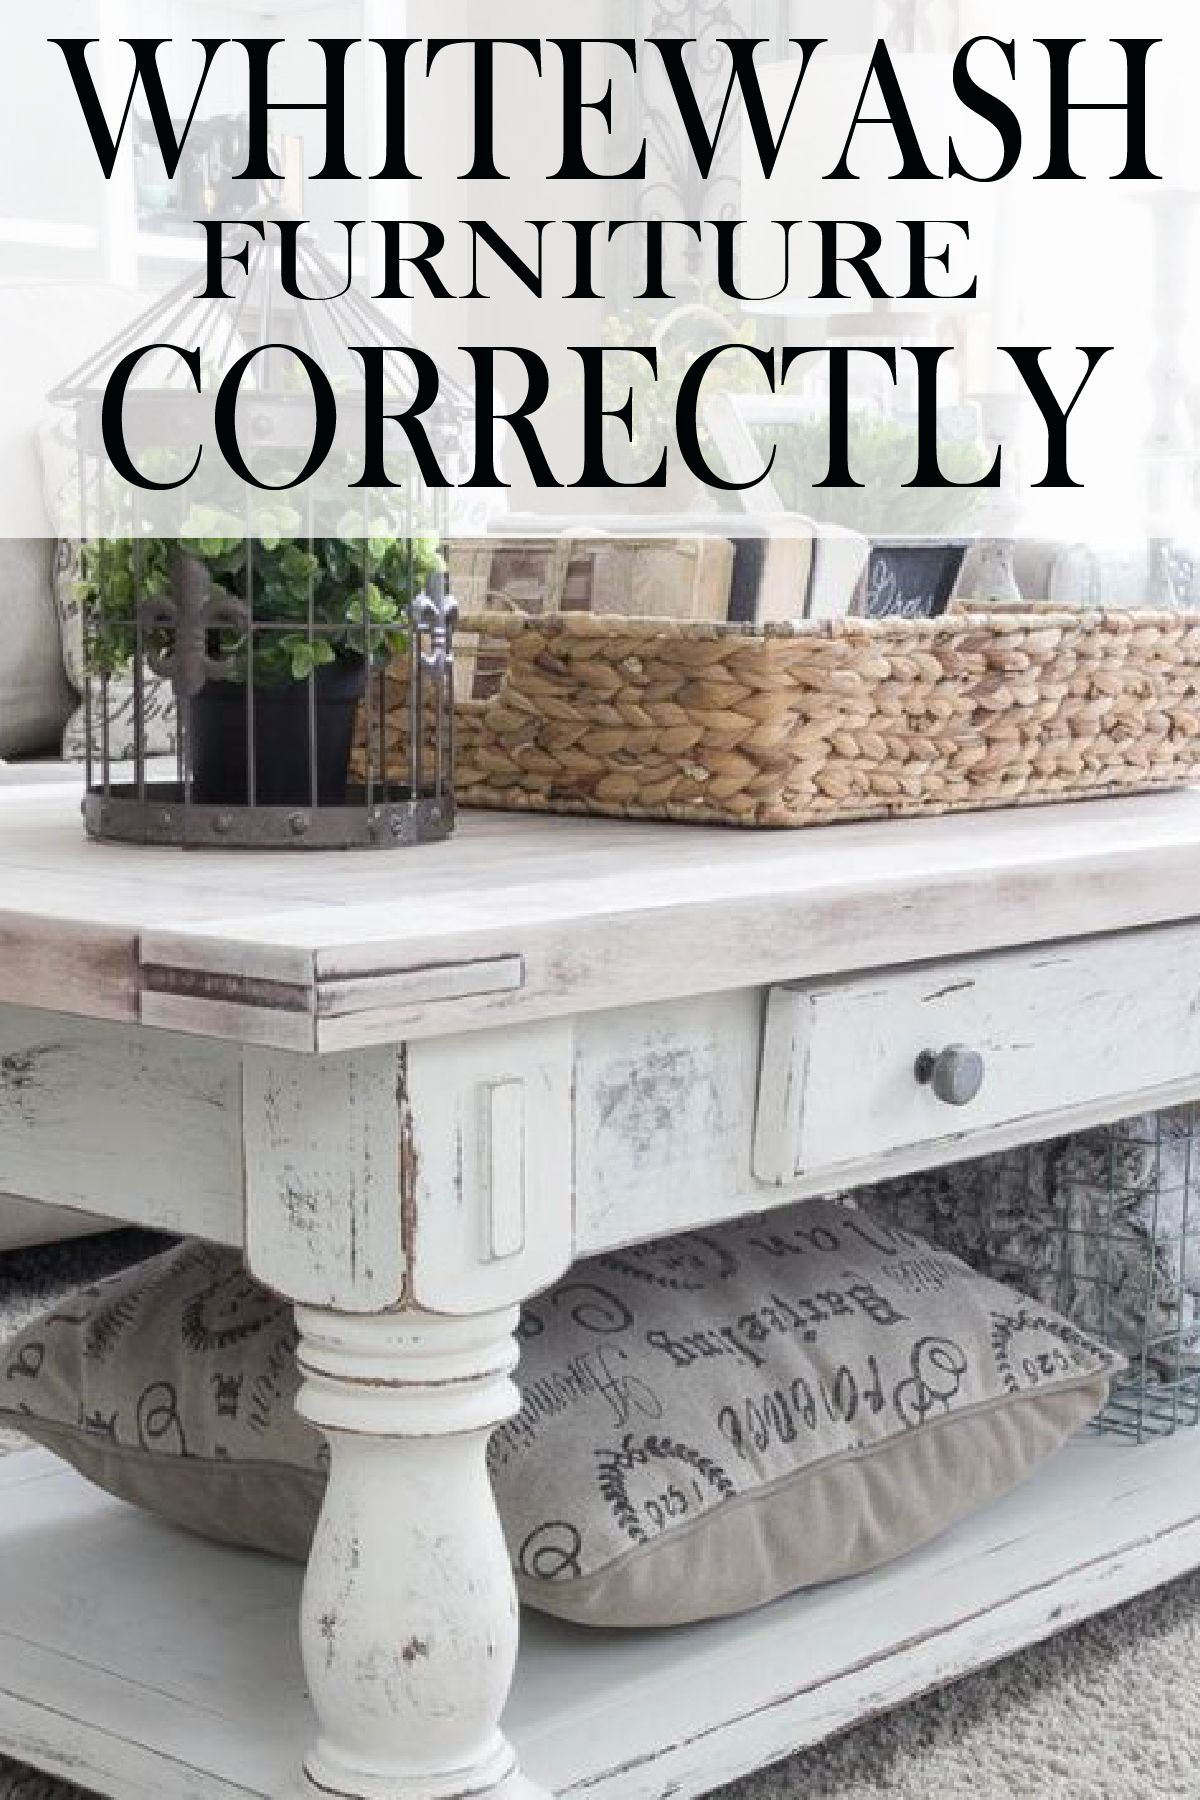 Now Time Couchtisch Ct 18 7 Tips To Whitewash Furniture Home Diy Projects And Tutorials